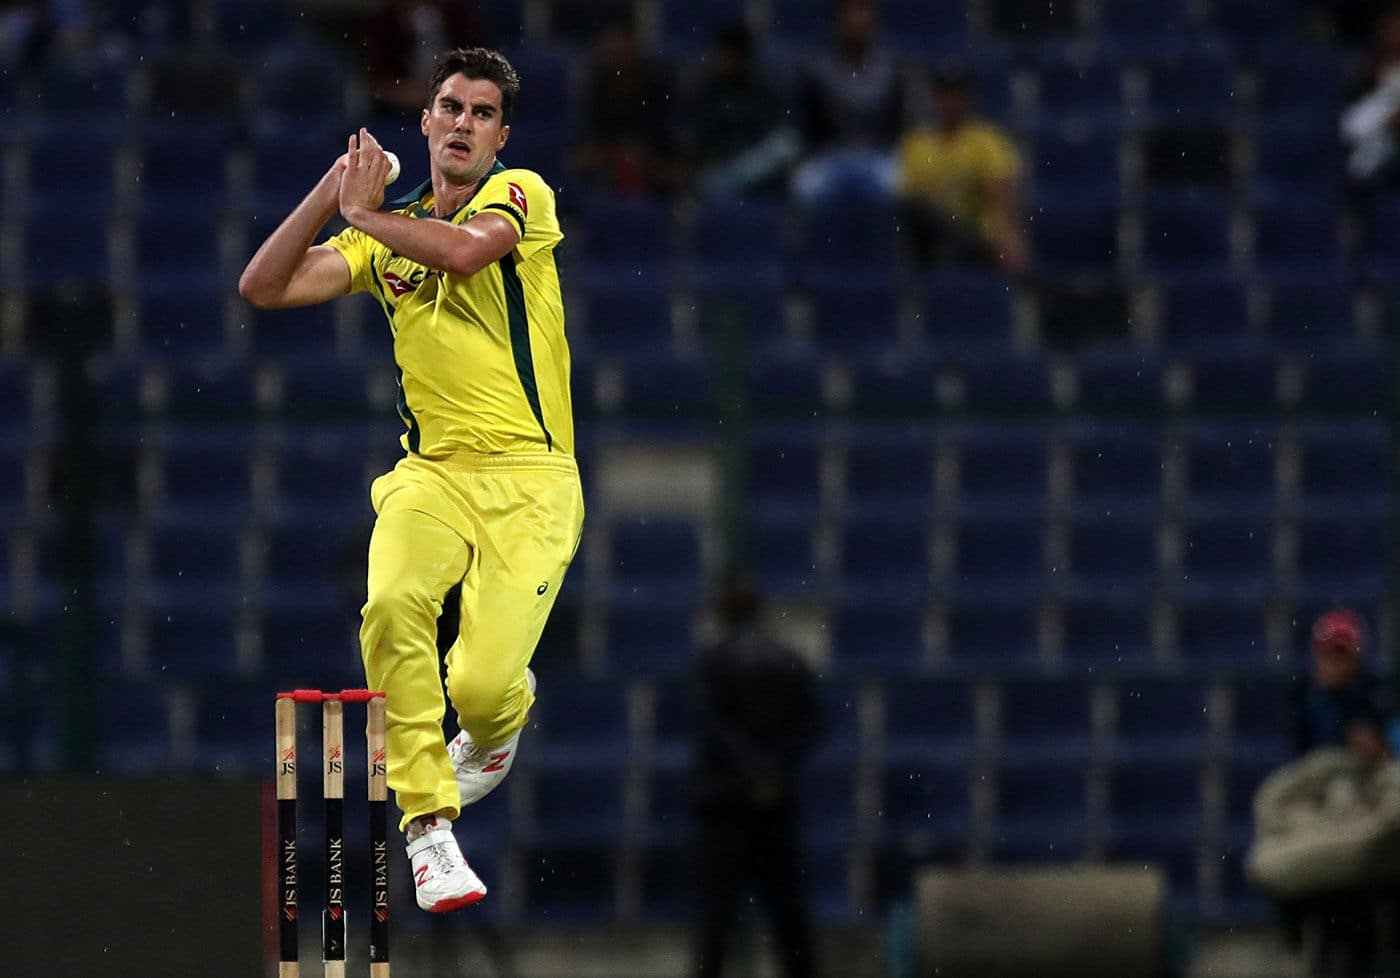 Australia send Pat Cummins home from UAE with World Cup in mind